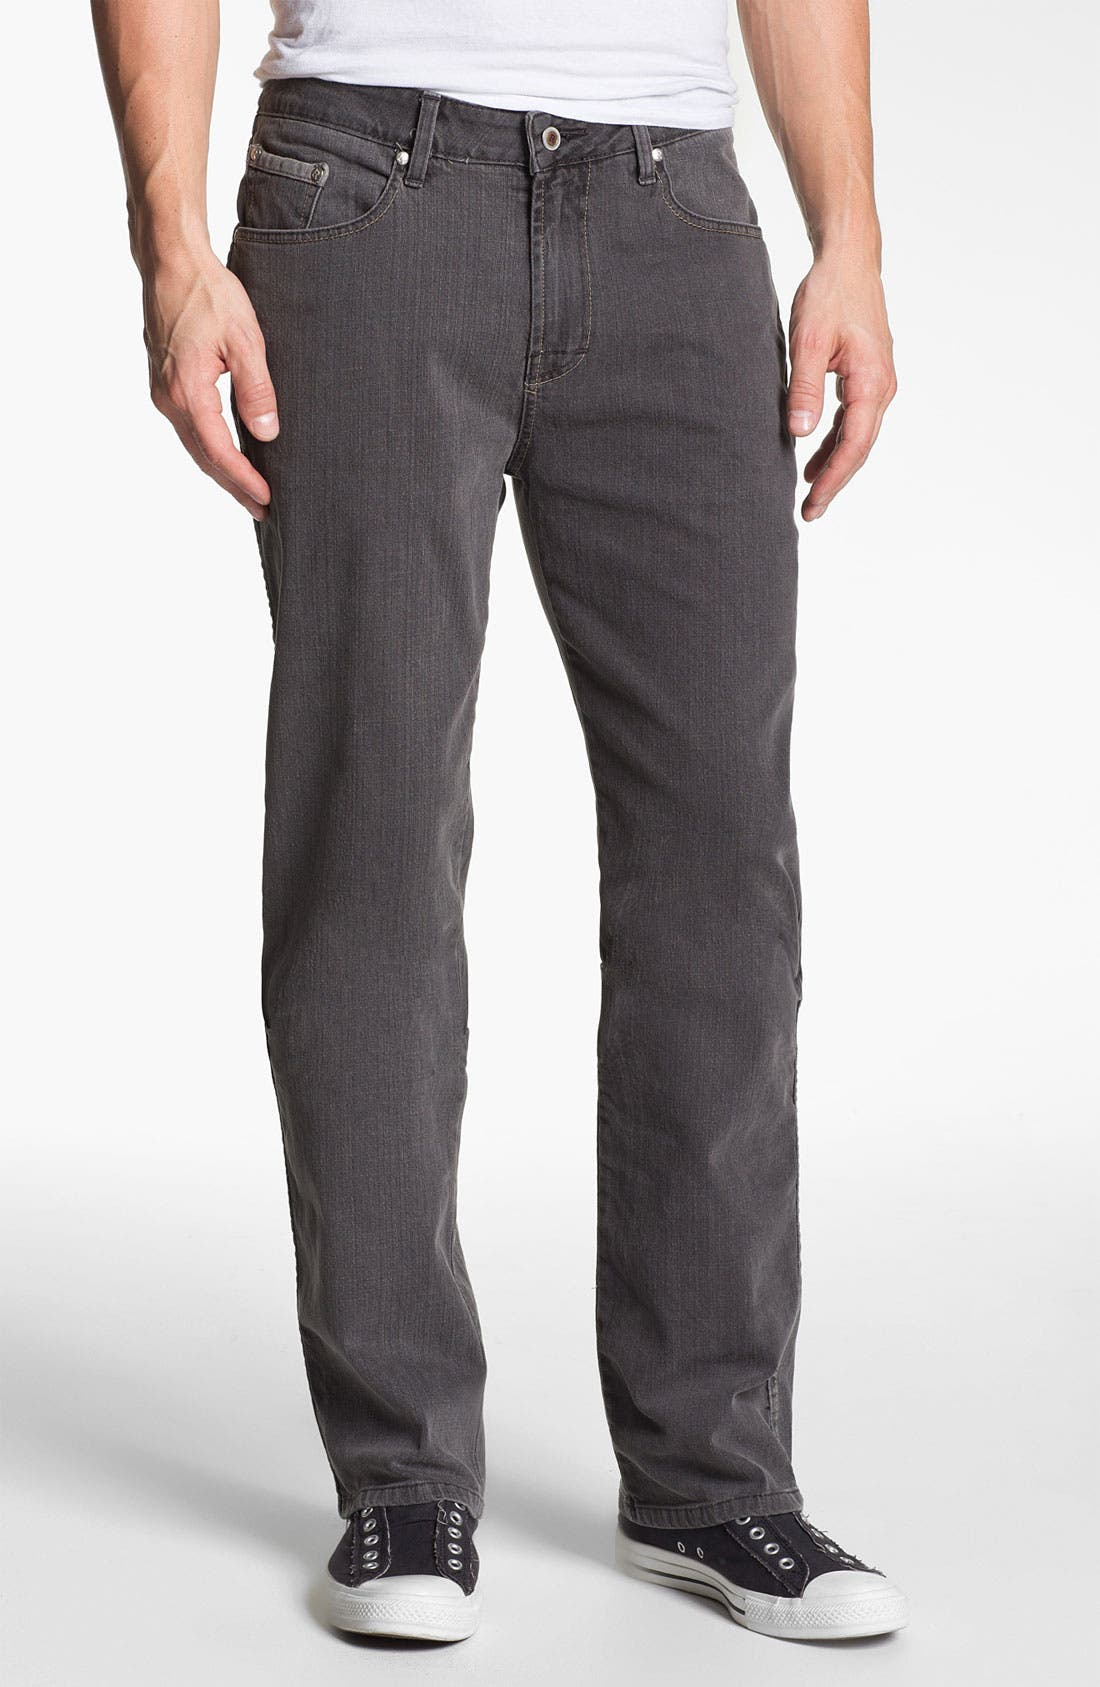 Alternate Image 1 Selected - ROAD 'Abbey Stretch' Relaxed Fit Straight Leg Jeans (Smoke)